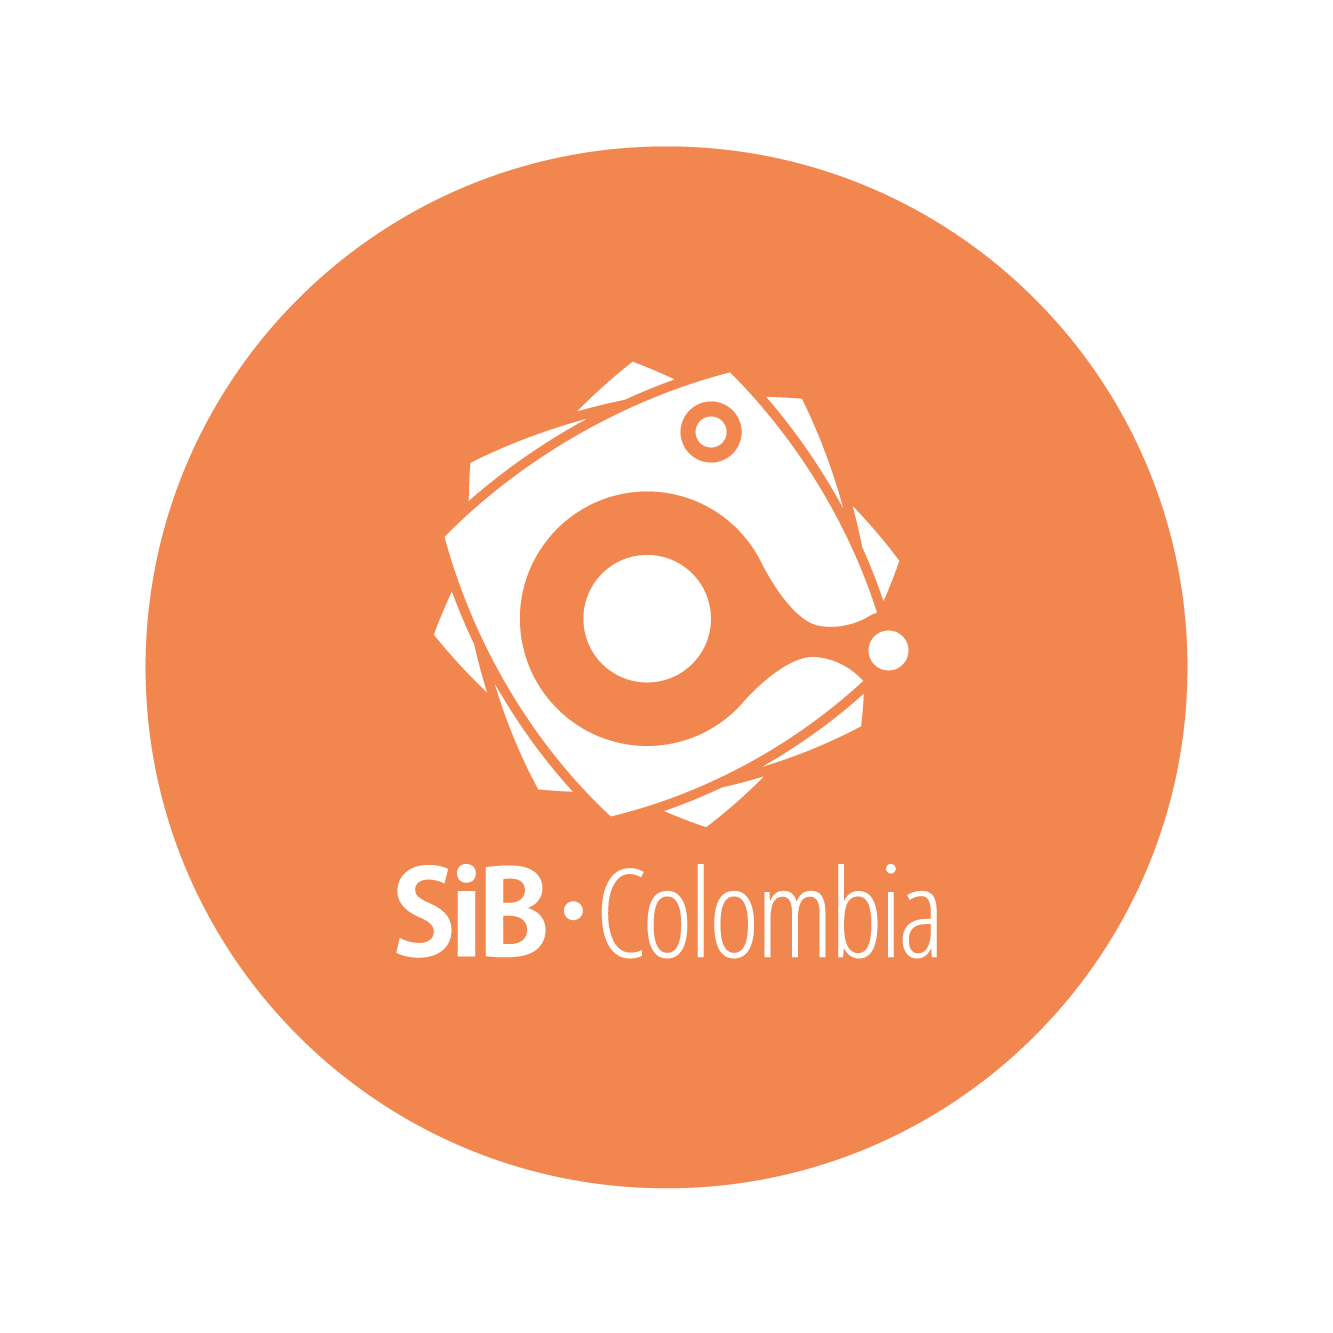 sib-colombia-26